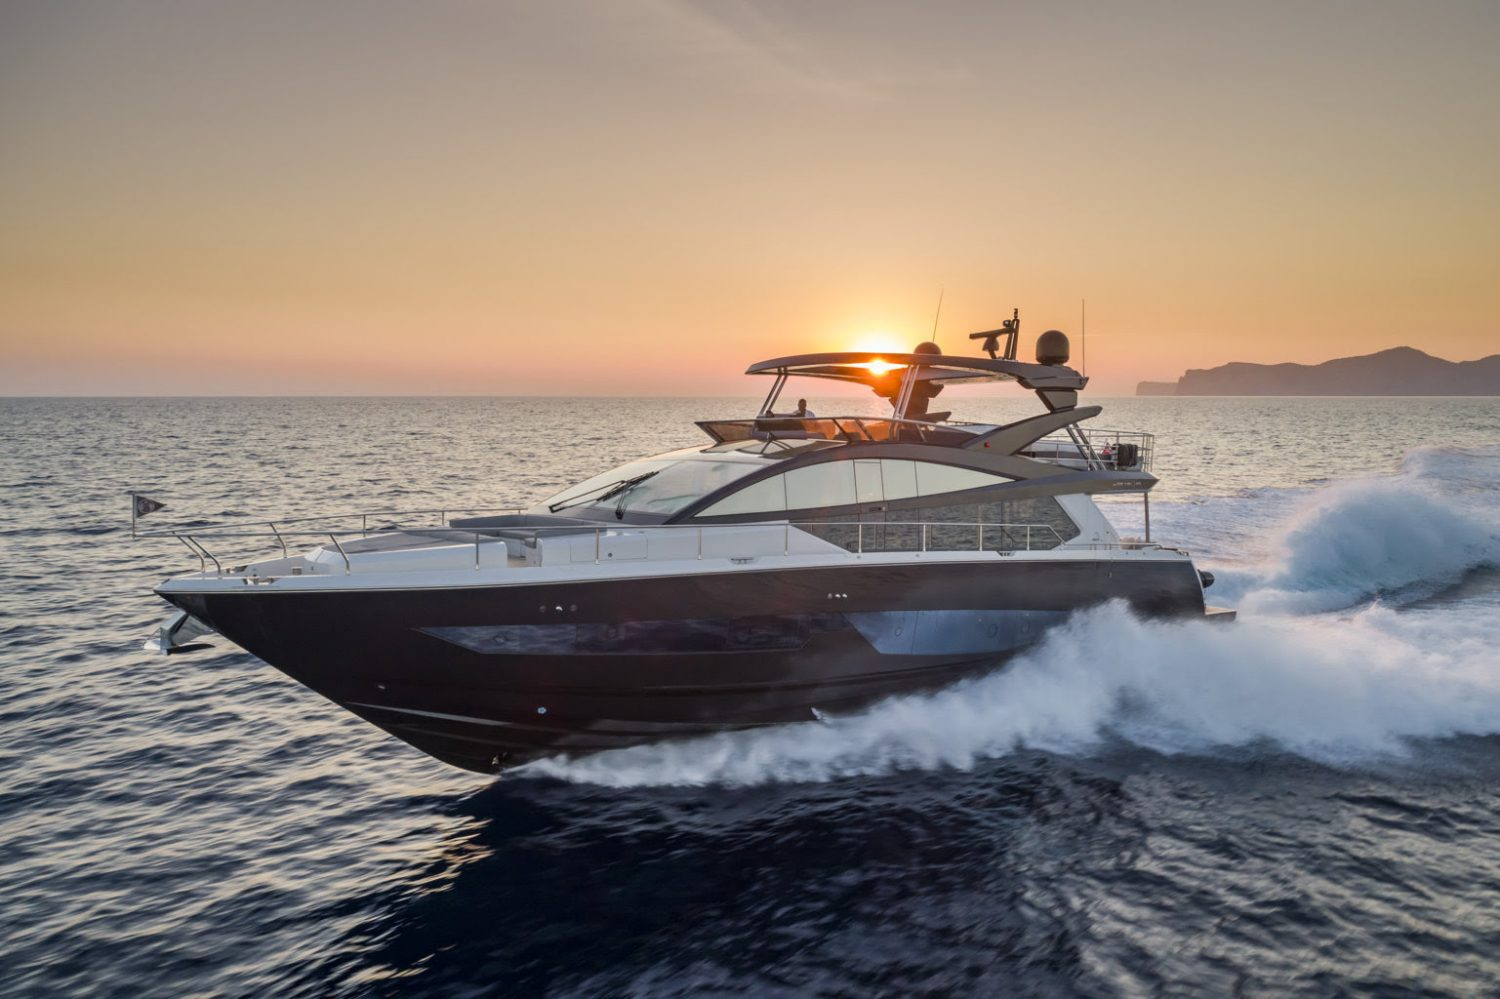 flibs 2019 The Highlights Of FLIBS 2019 highlights flibs 2019